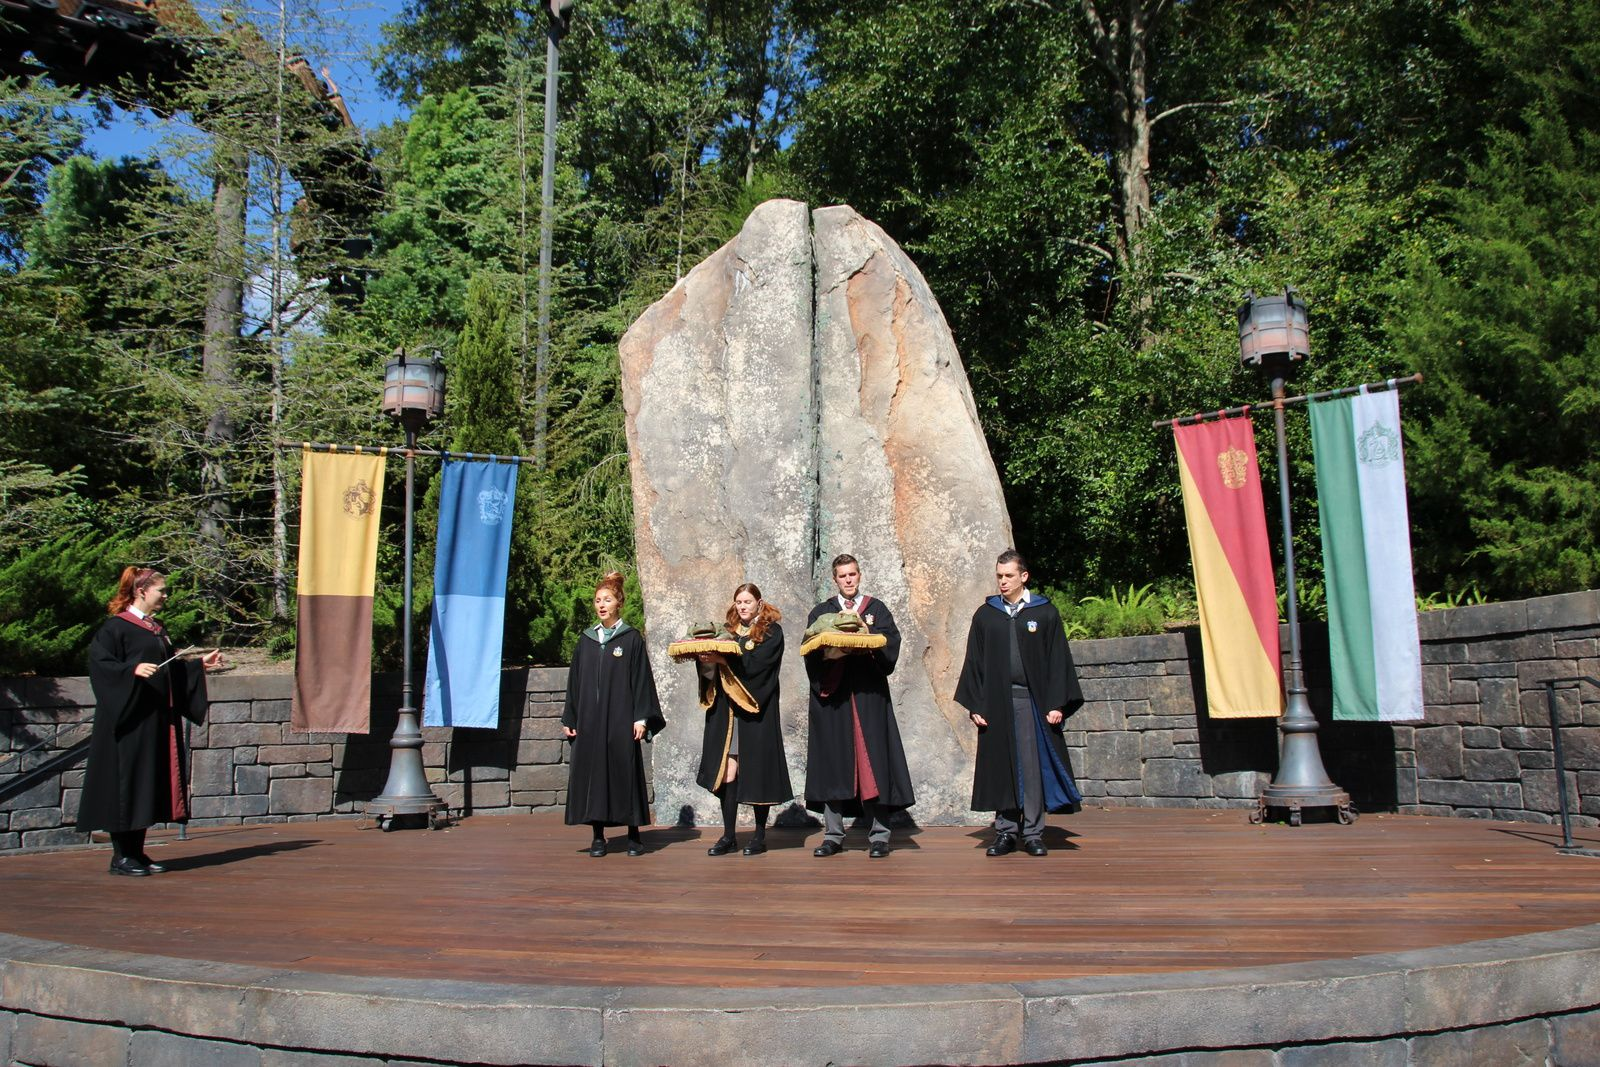 La chorale de Poudlard : The Wizarding World of Harry Potter